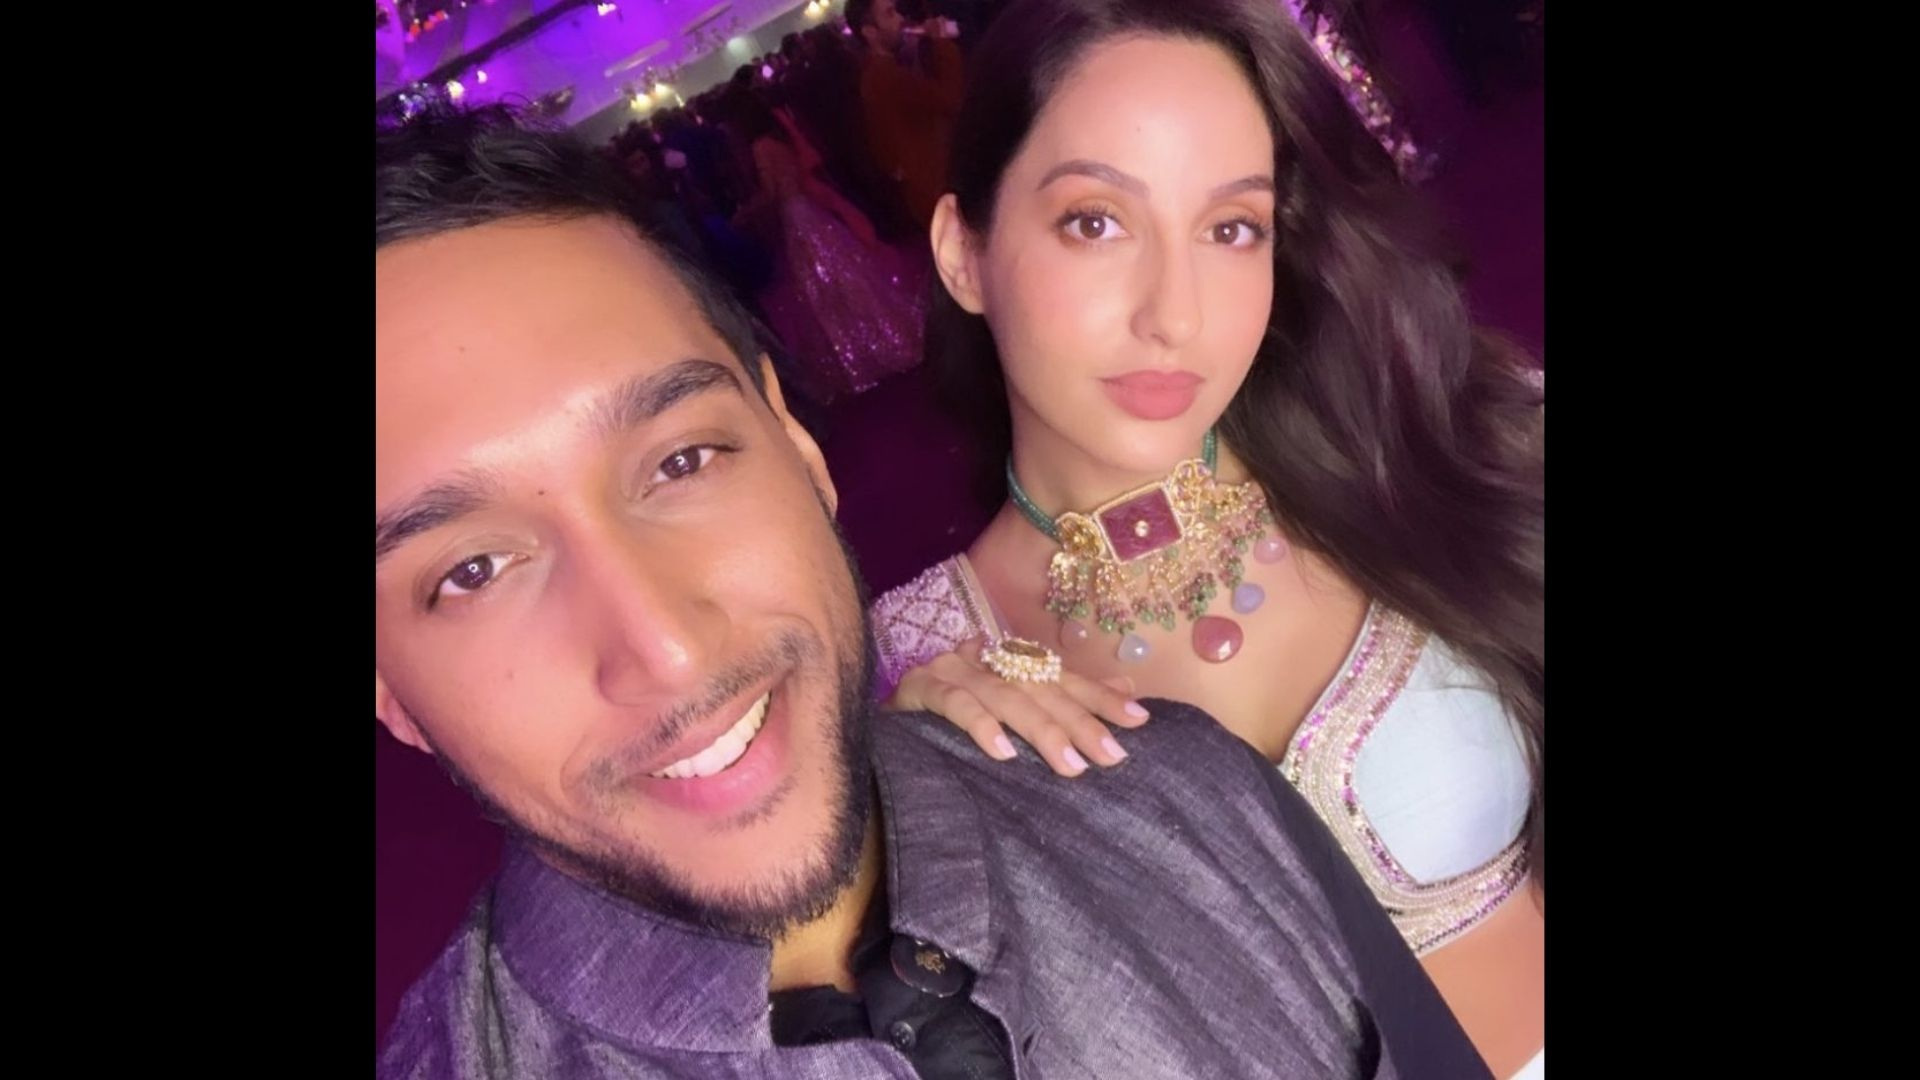 Nora Fatehi Grooves On A Song With Her Mystery Man Steven Roy Thomas; Actress' Sizzling Dance Moves Will Leave You In Awe